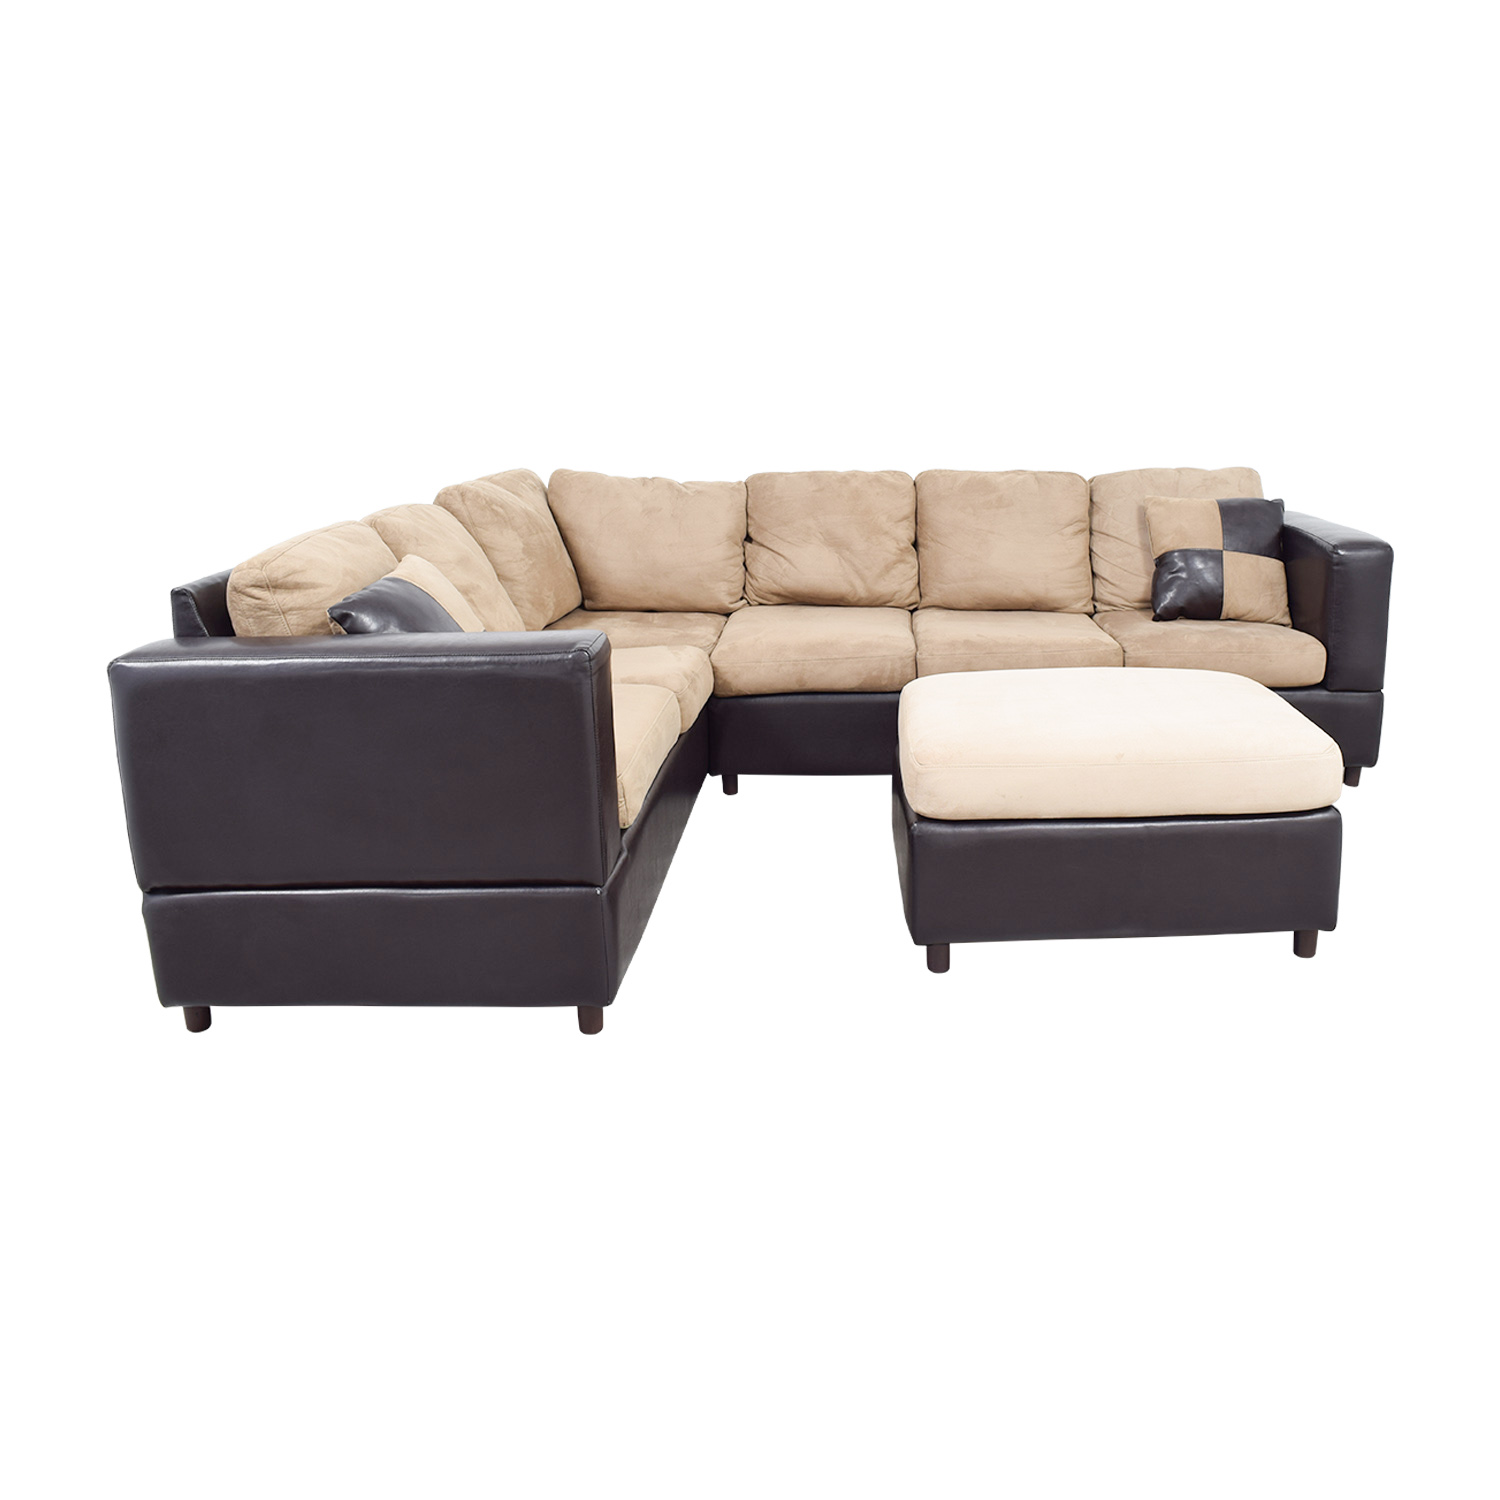 Outstanding 66 Off Jennifer Furniture Jennifer Furniture Brown Leather And Tan Micro Suede L Sectional With Ottoman Sofas Gmtry Best Dining Table And Chair Ideas Images Gmtryco